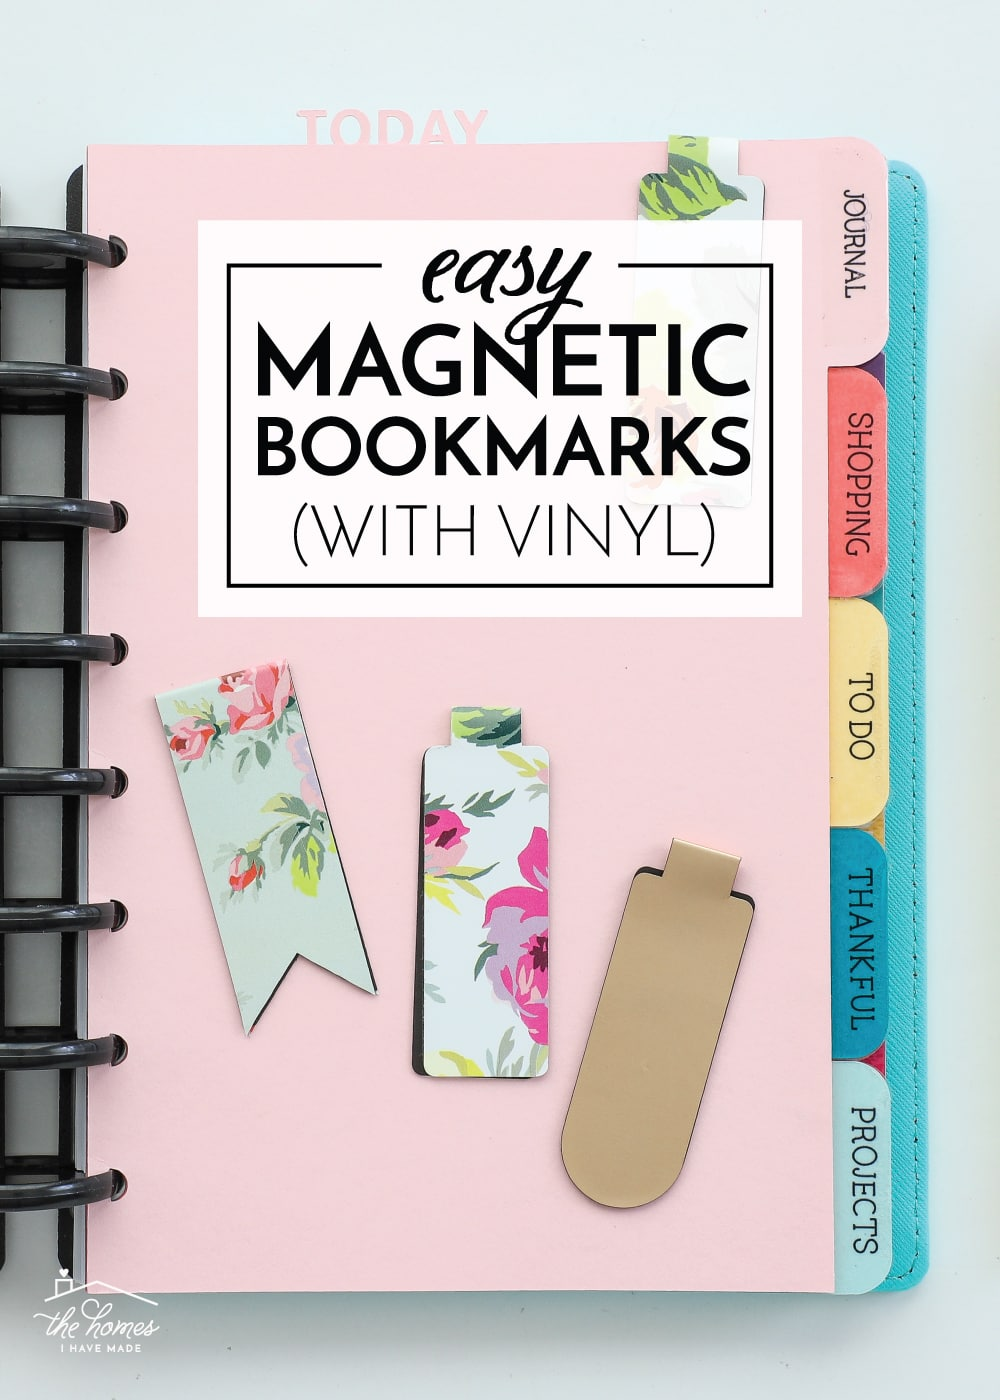 Magnetic Bookmarks with Vinyl